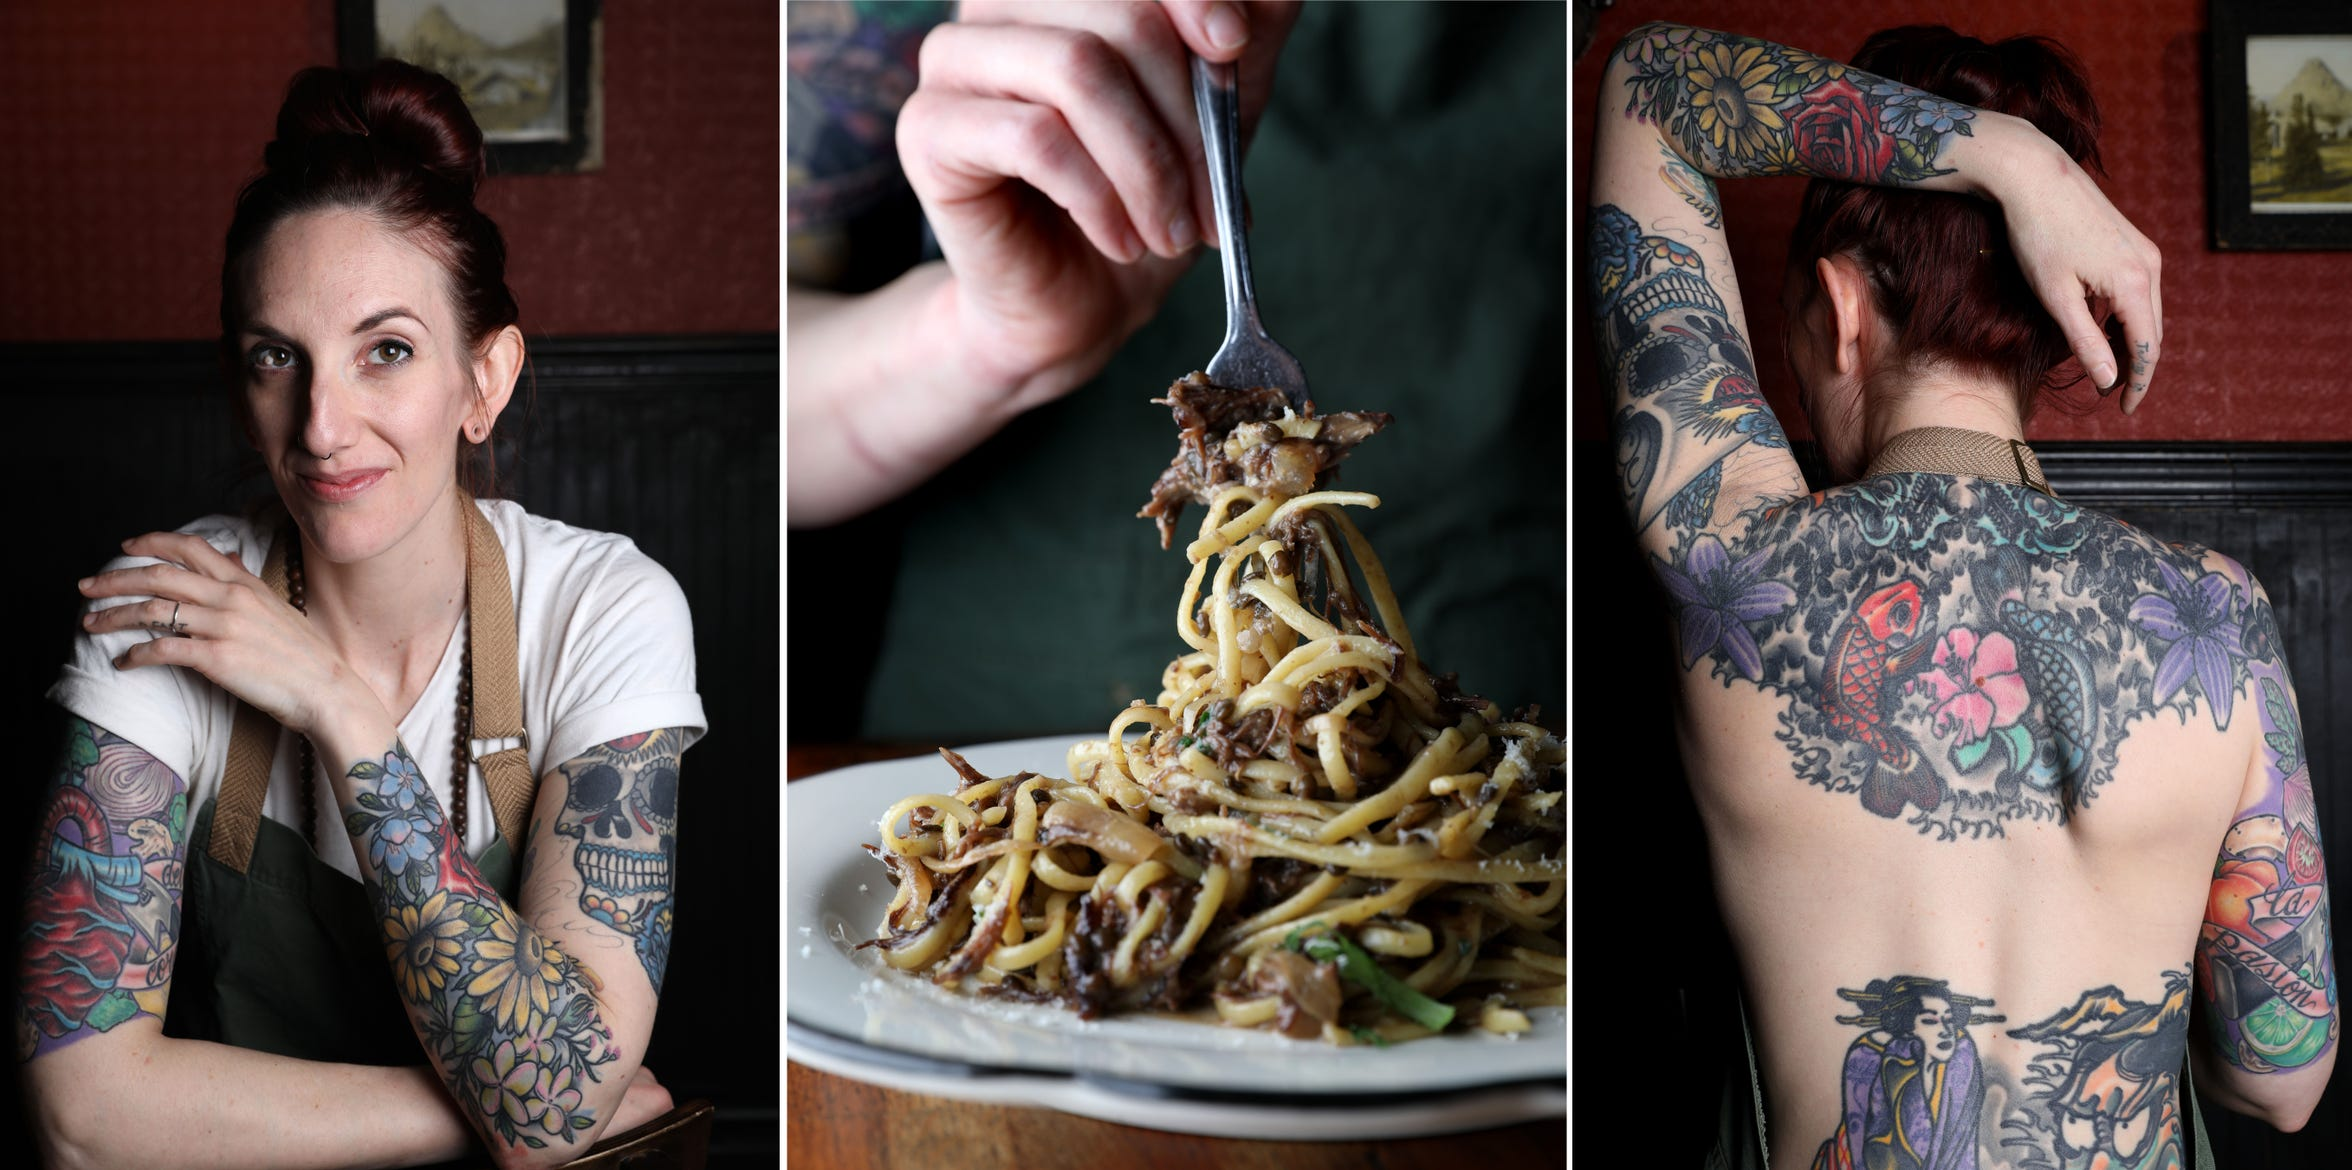 Chef Sajin Renae Perino, the chef de cuisine at The Cookery in Dobbs Ferry  beside her spaghetti with oxtail and her arm and back tattoos, including her first tattoo of two fish, a nod to her and her mother's Pisces zodiac sign.